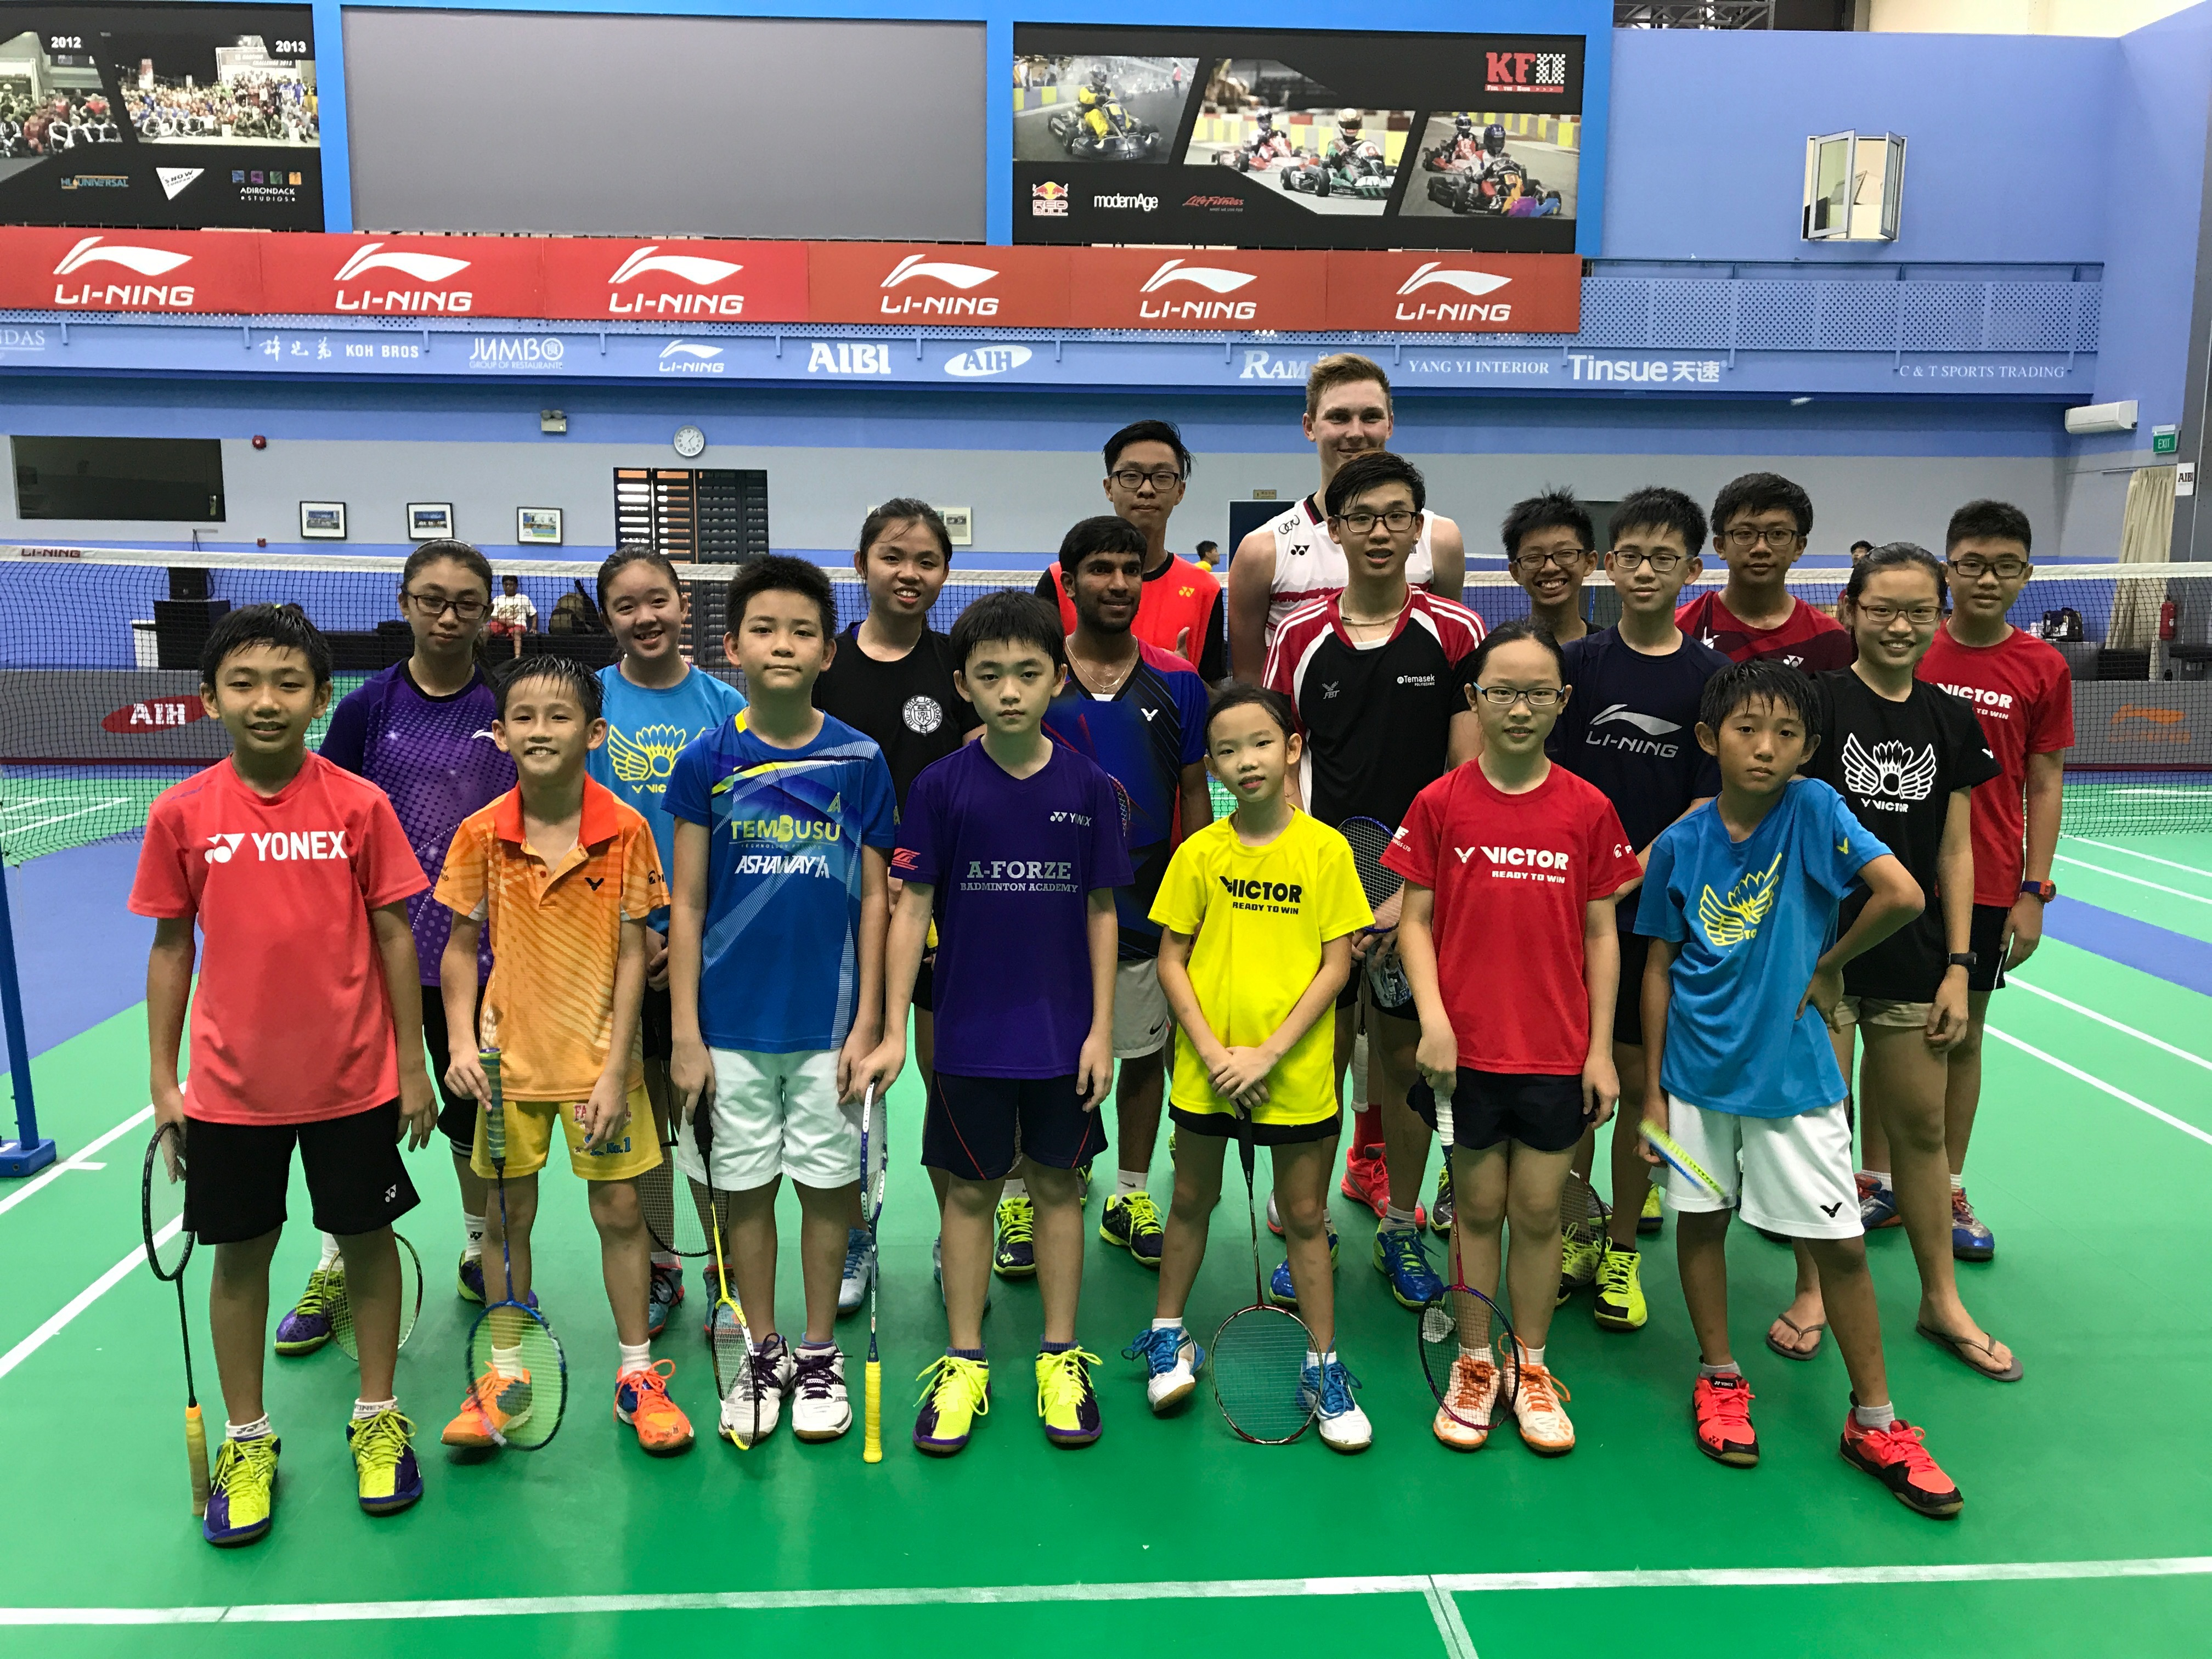 090417 Team Photo with Viktor Axelsen